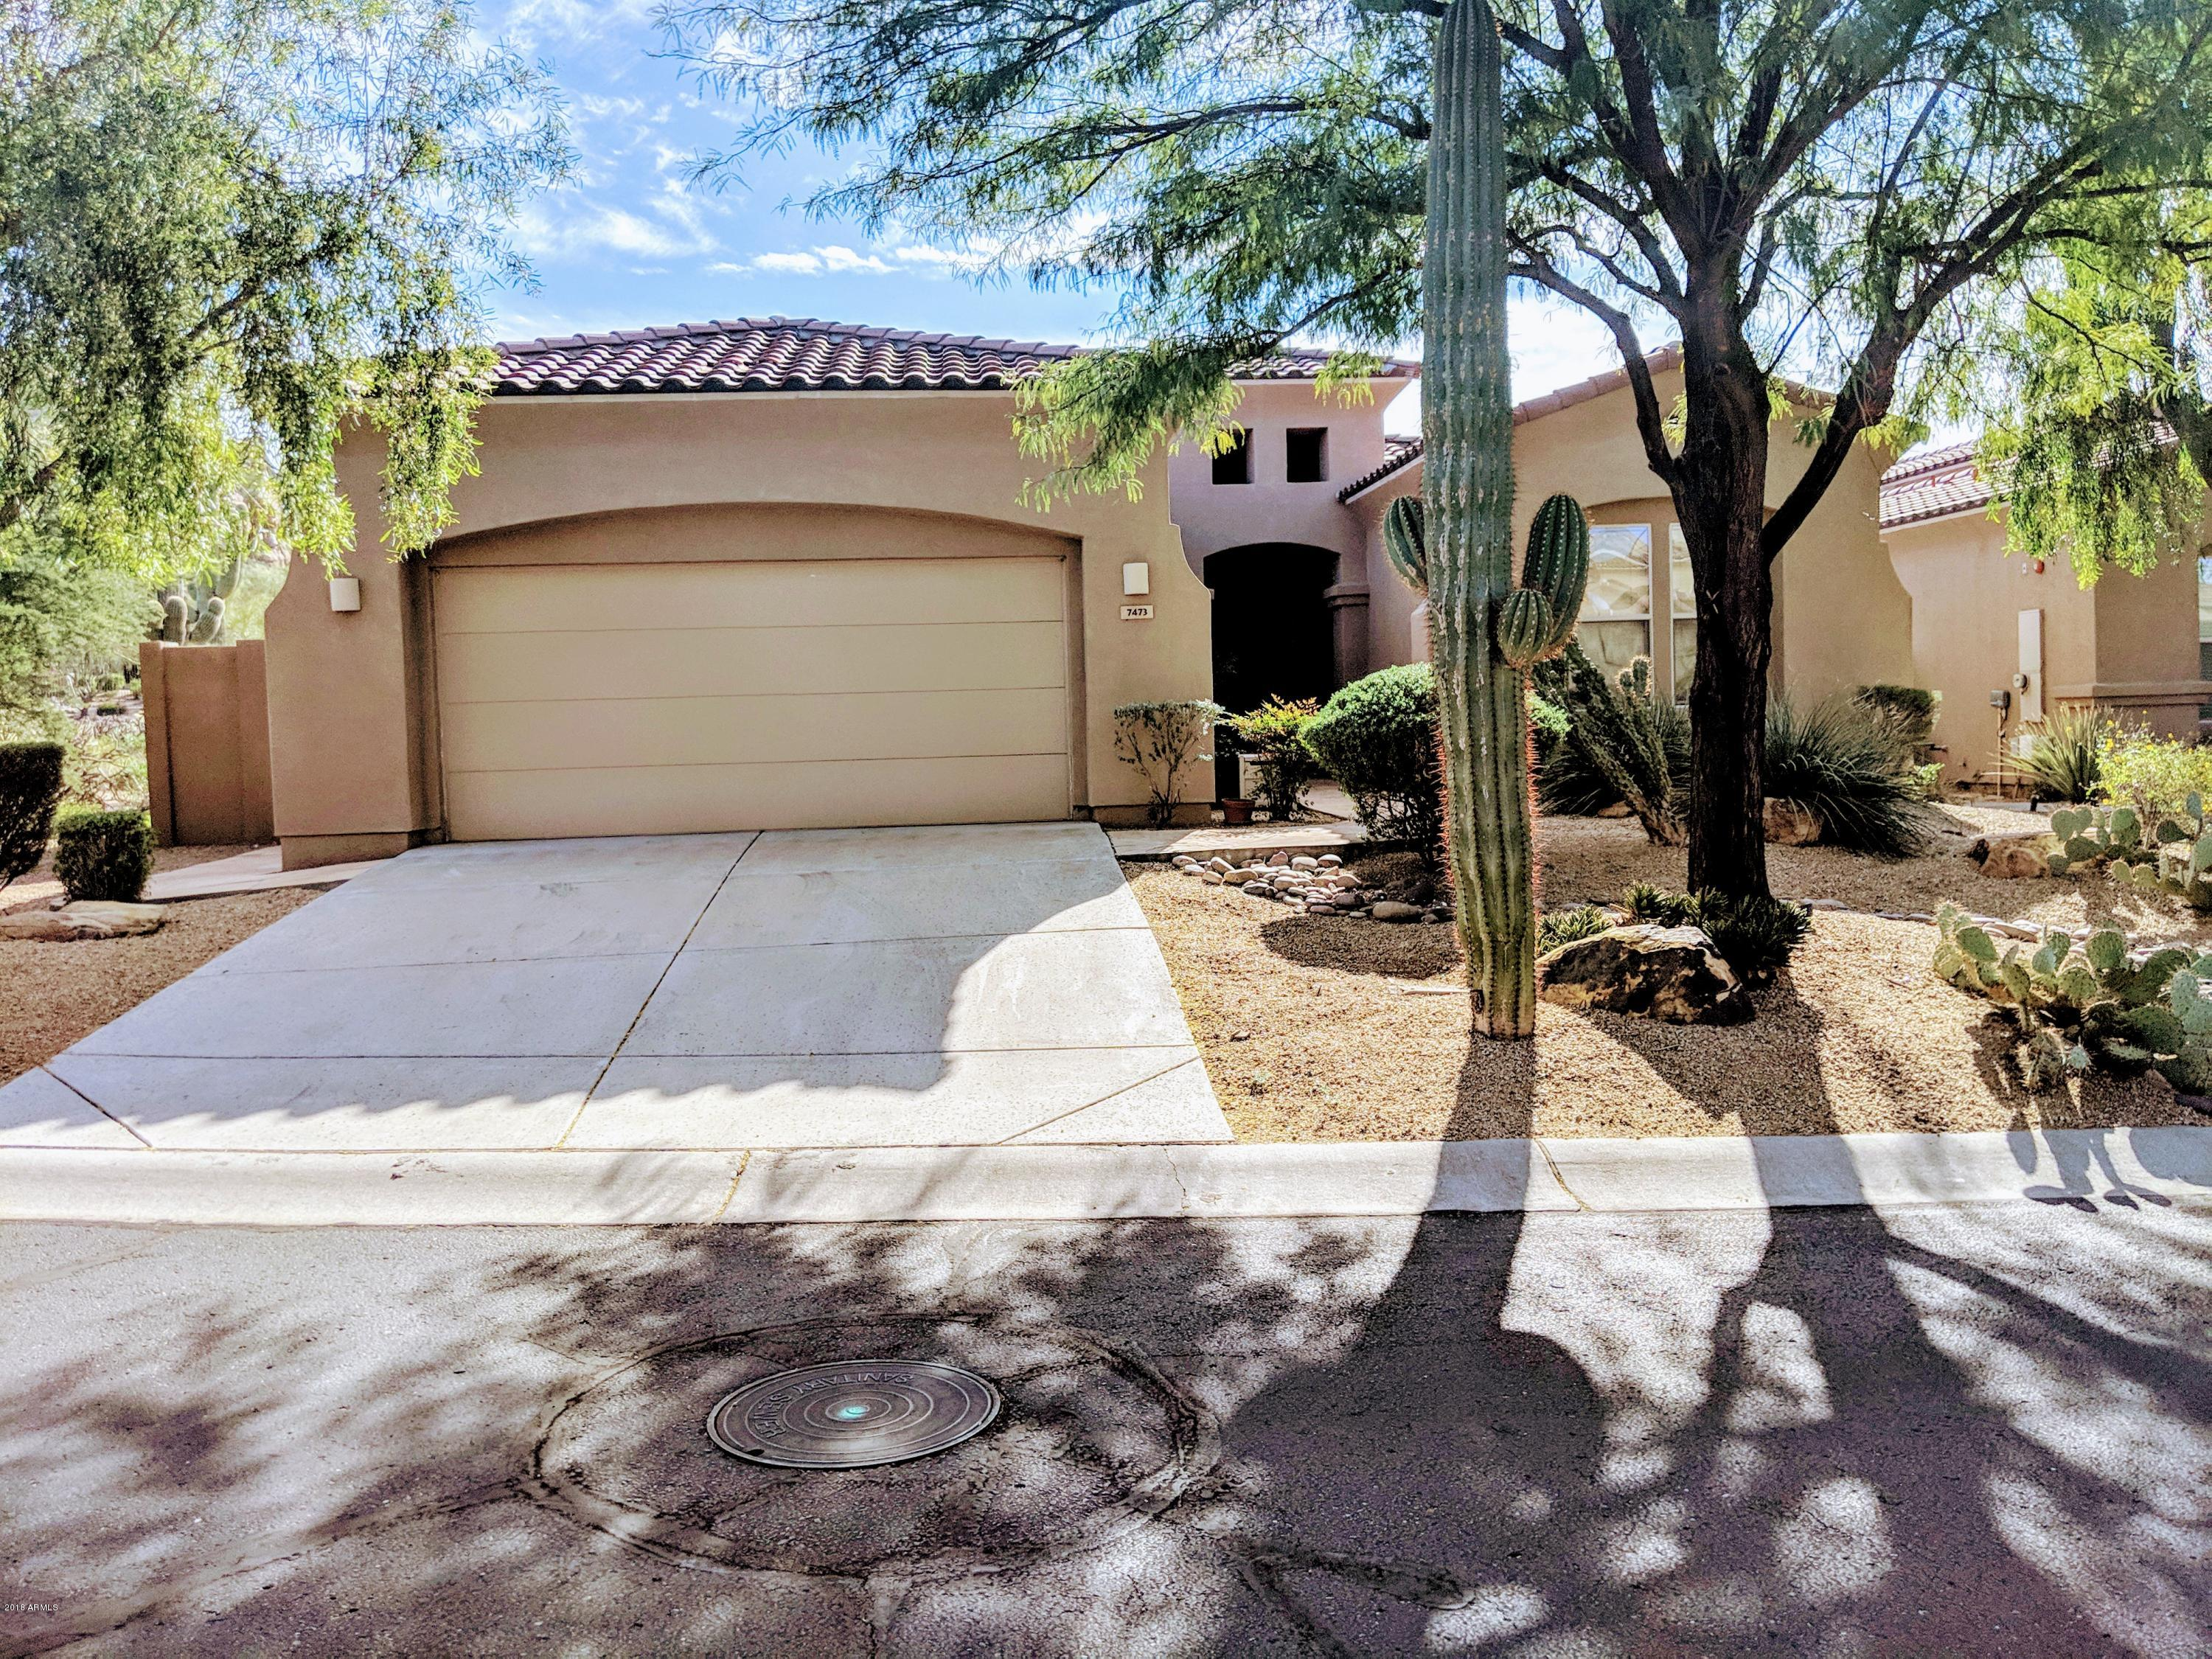 Photo of 7473 E RUSSET SKY Drive, Scottsdale, AZ 85266